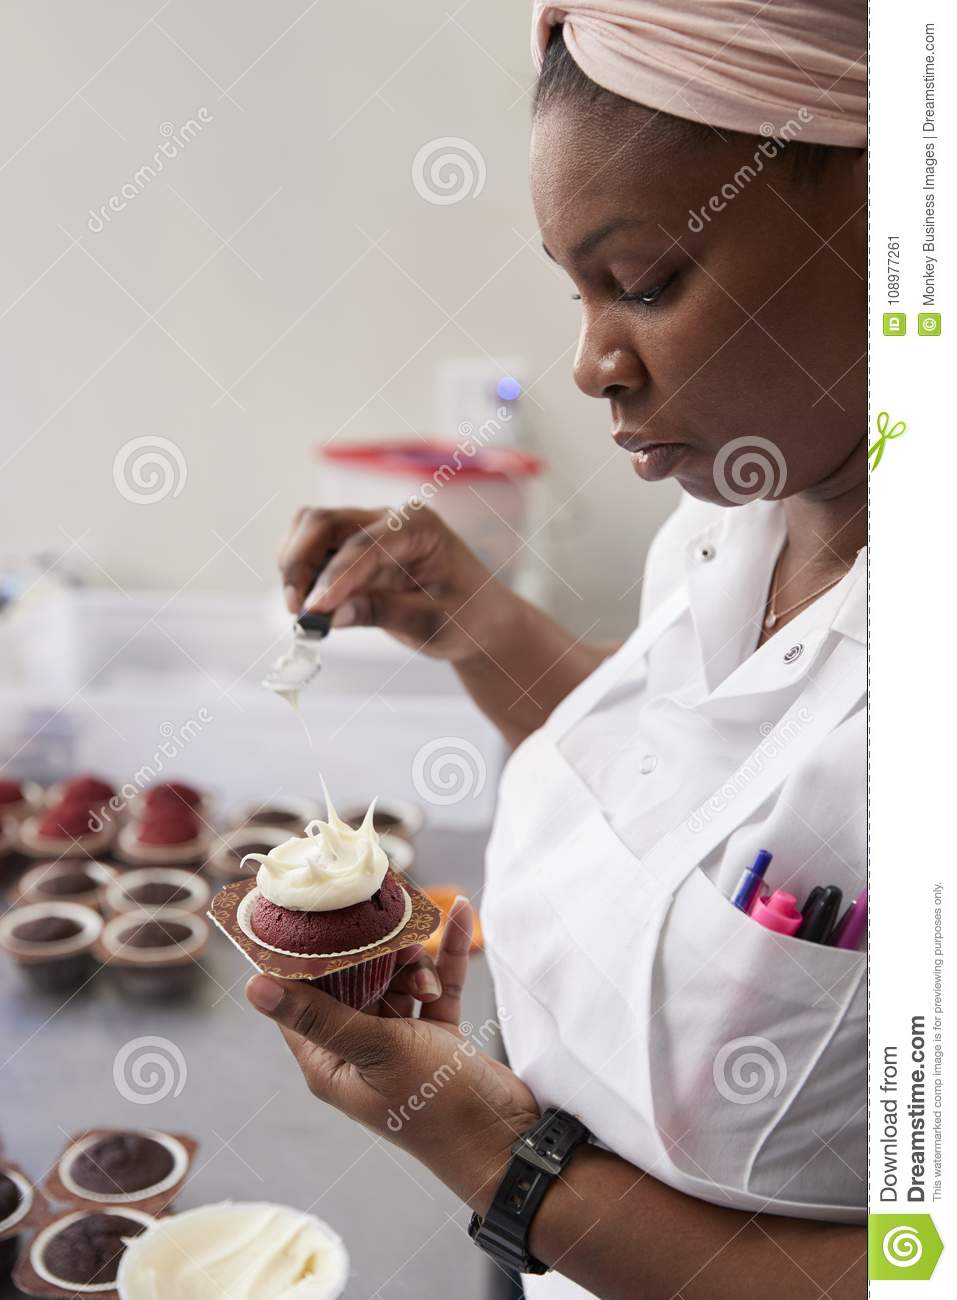 Young black woman preparing food in a bakery, close up